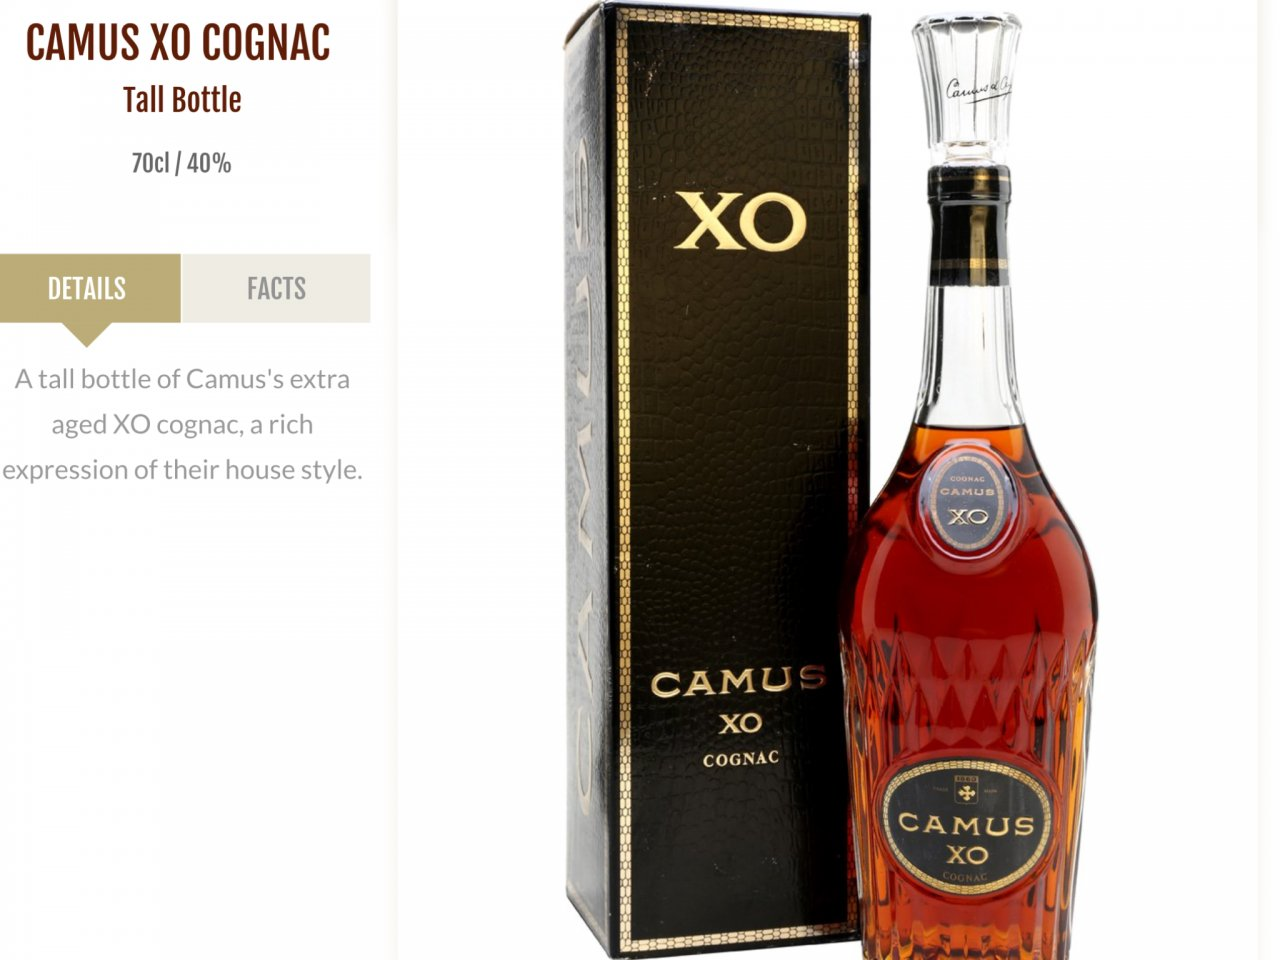 Wants To Know The Price Of This Vintage Camus Xo Thanks